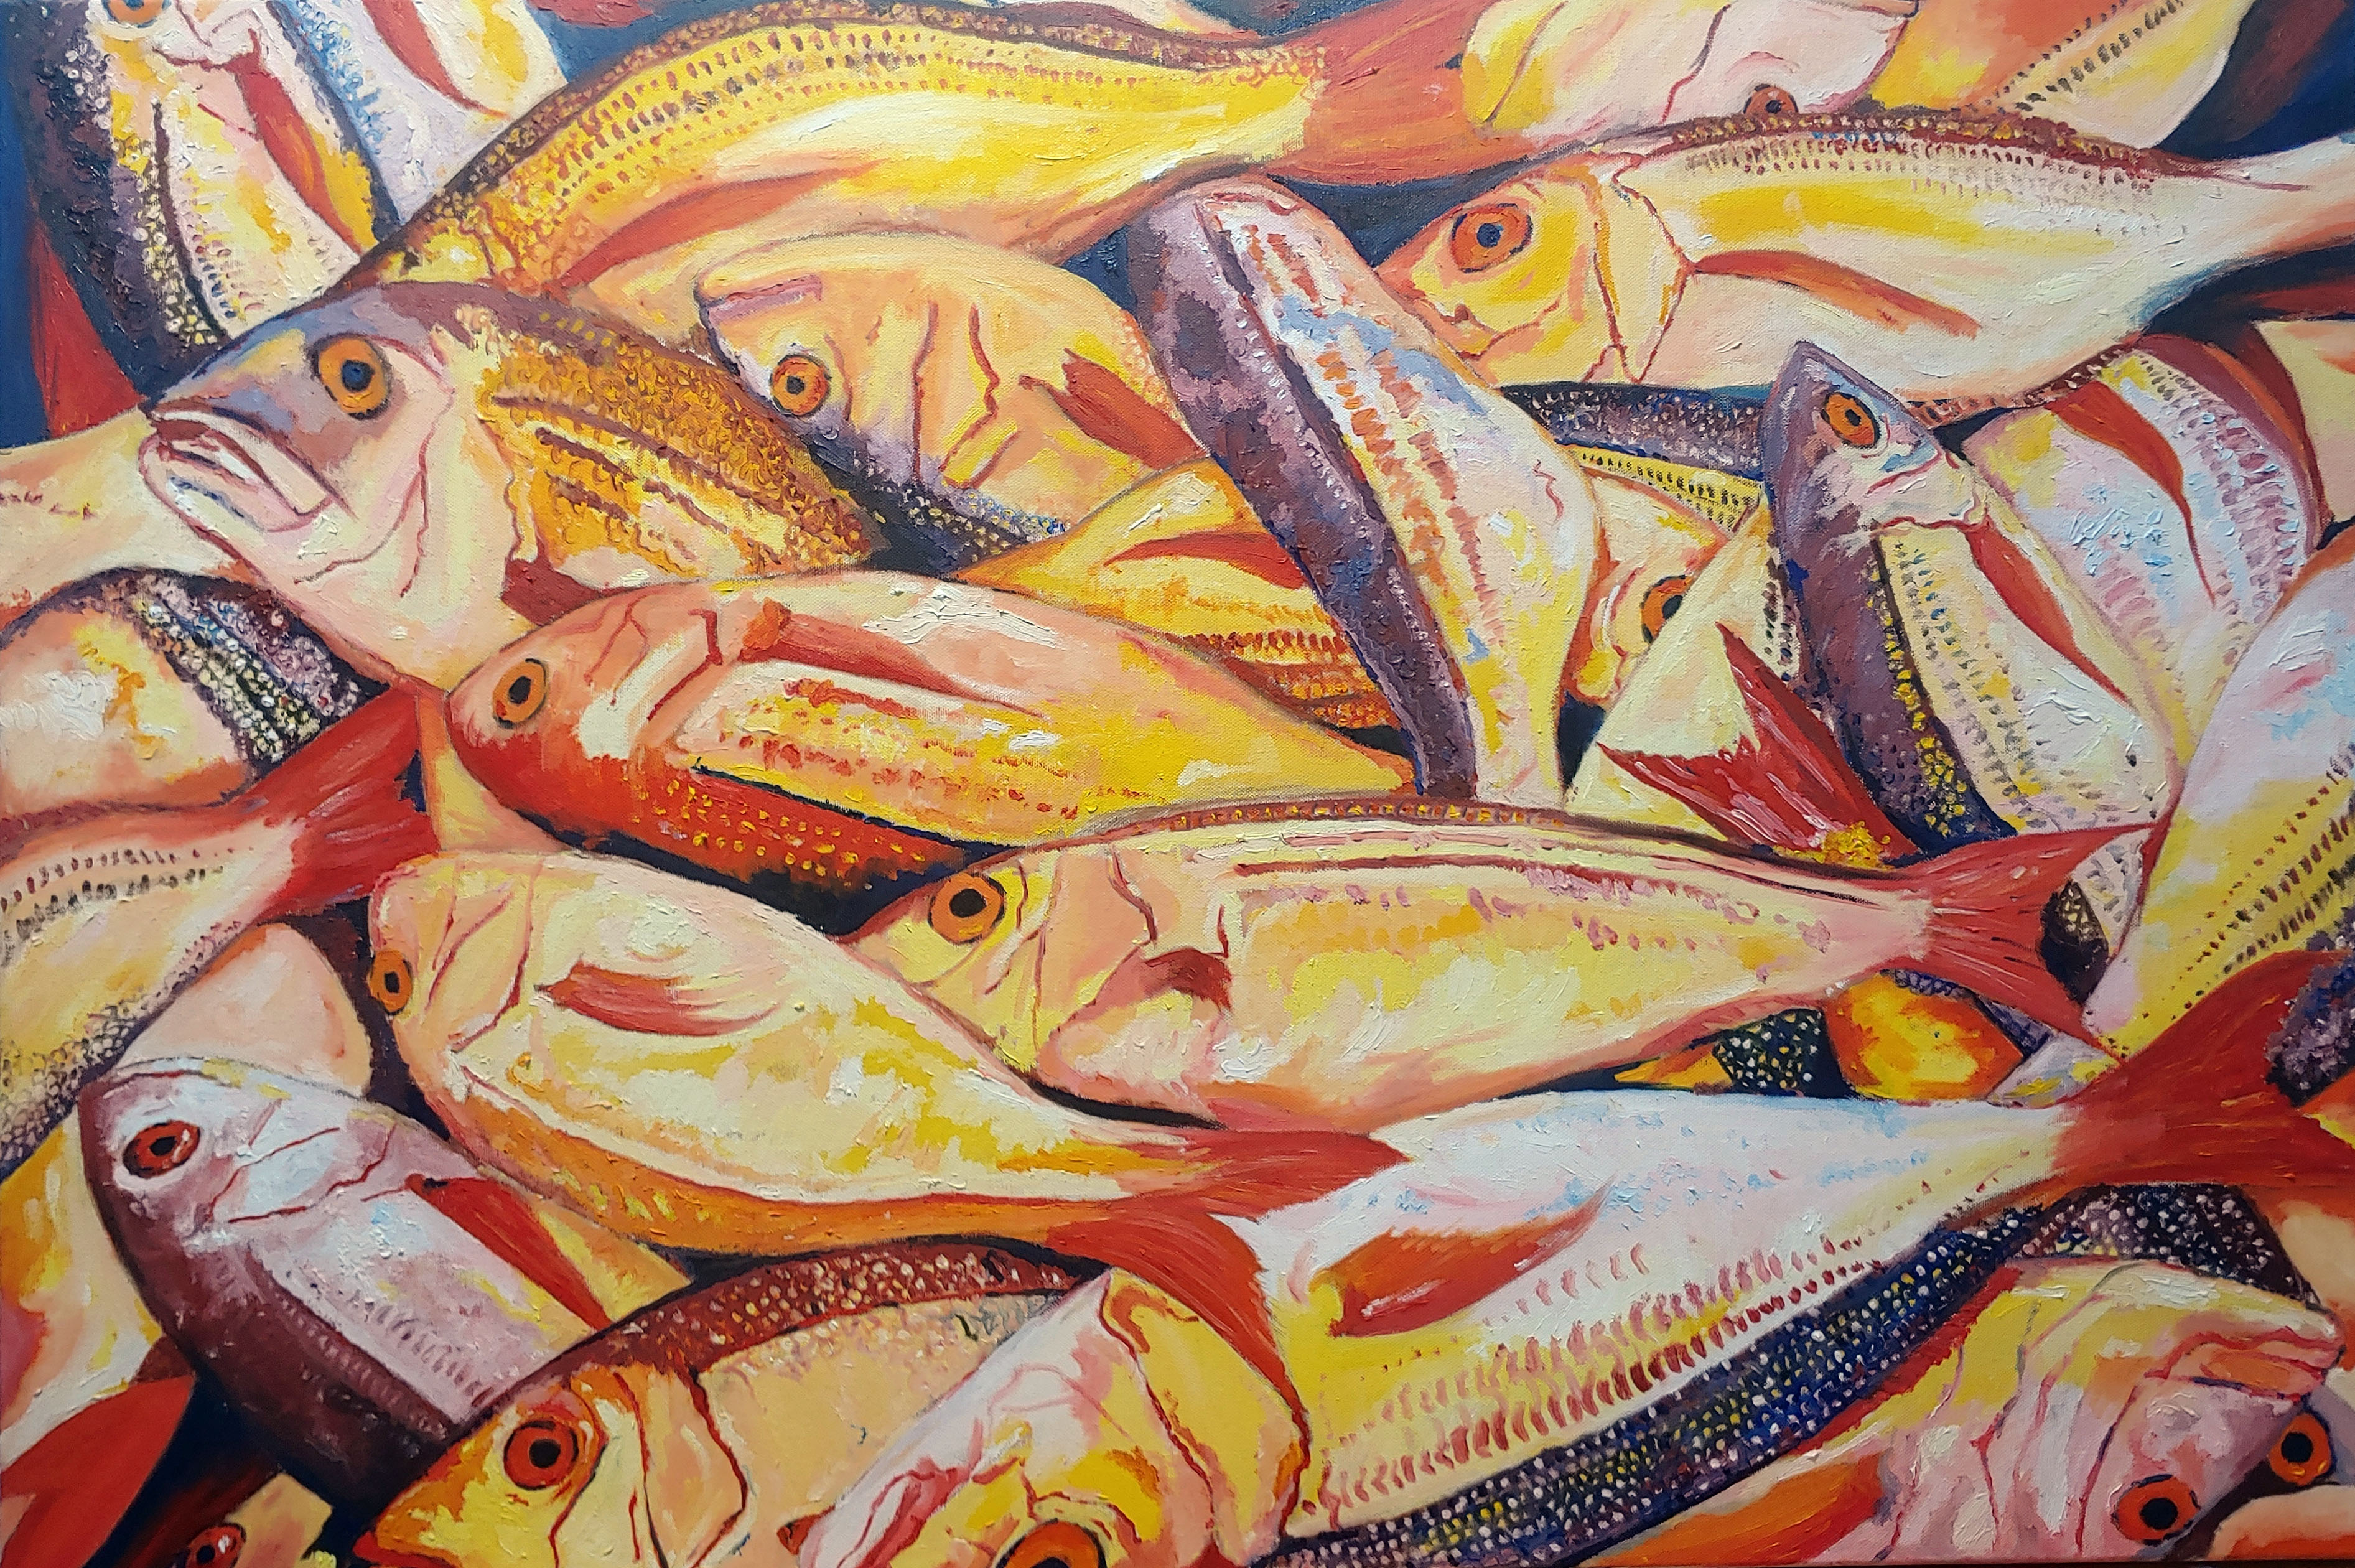 Bospherous Yellow Fish  artwork by Karl Rozemeyer - art listed for sale on Artplode